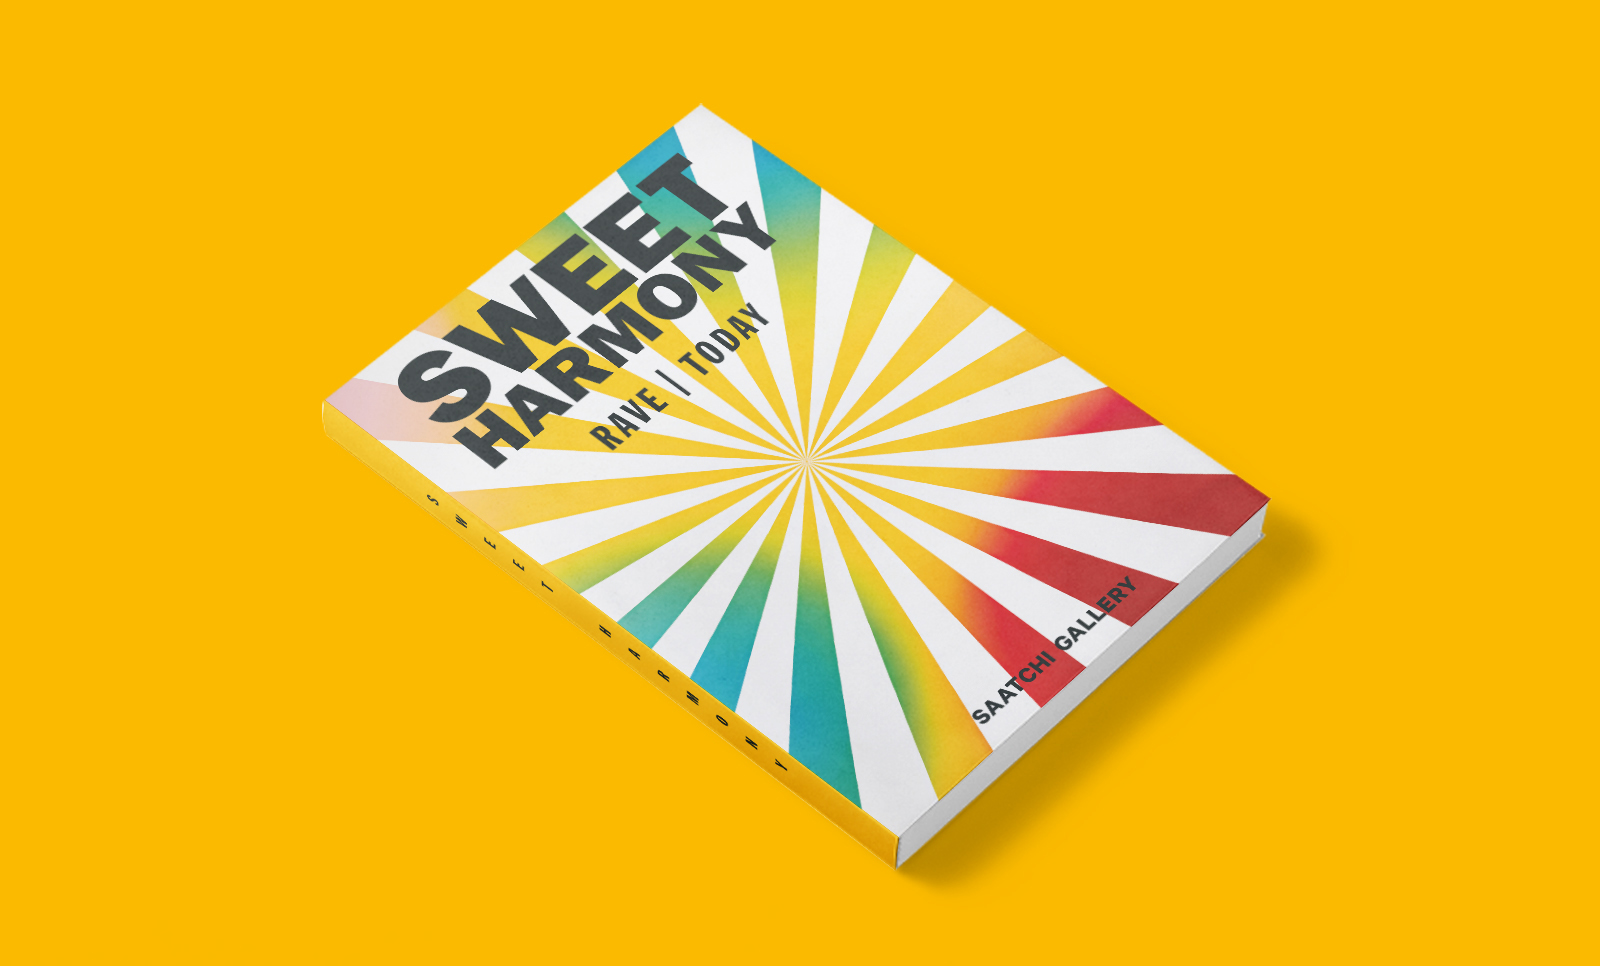 Sweet-Harmony-Saatchi-Gallery-Rave-Today-Book-Cover-James-Lee-Duffy.jpg